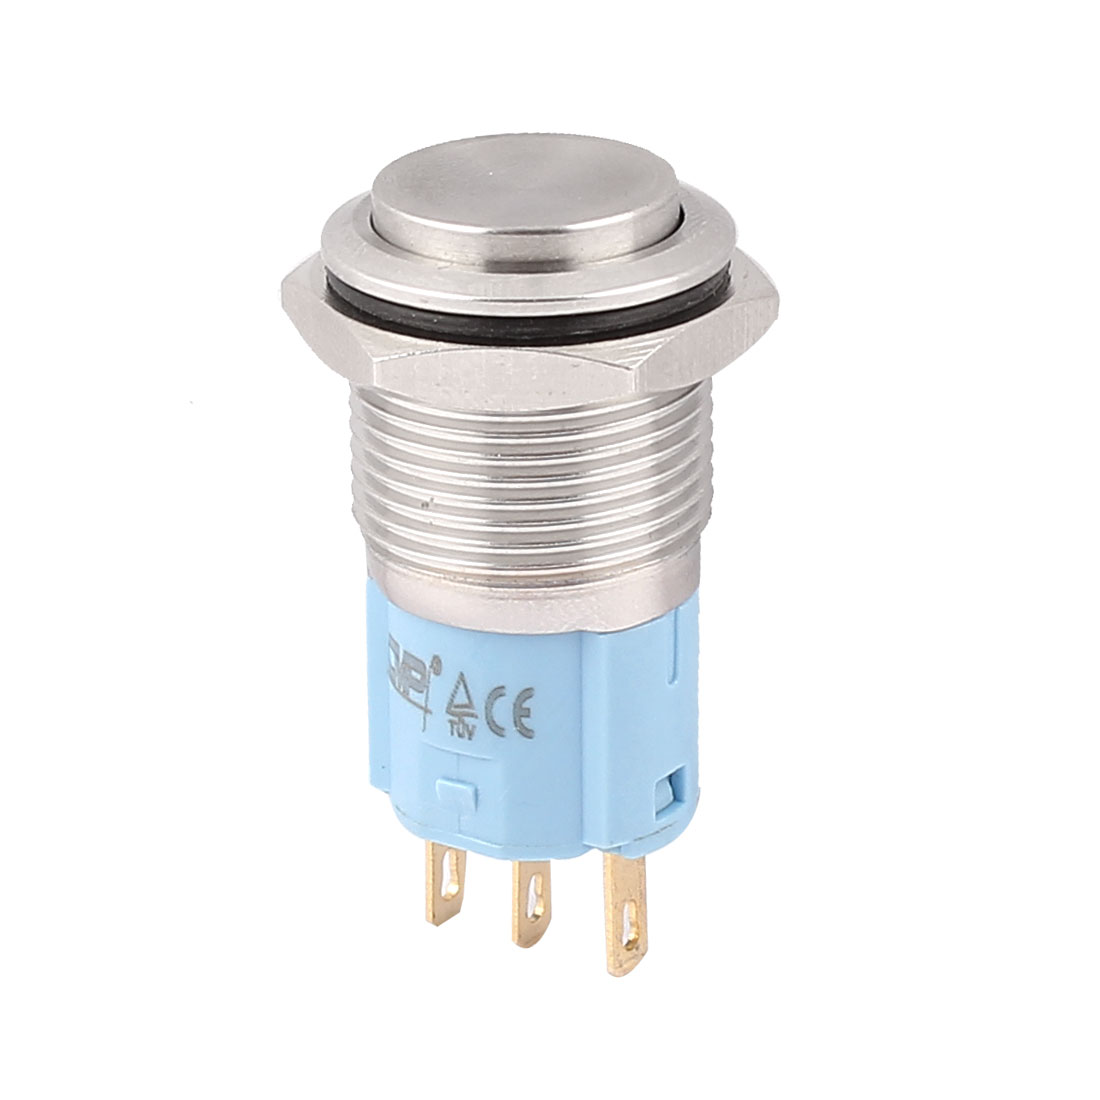 16mm Mounted Thread 3 Pins SPDT High Head Momentary Push Button Switch